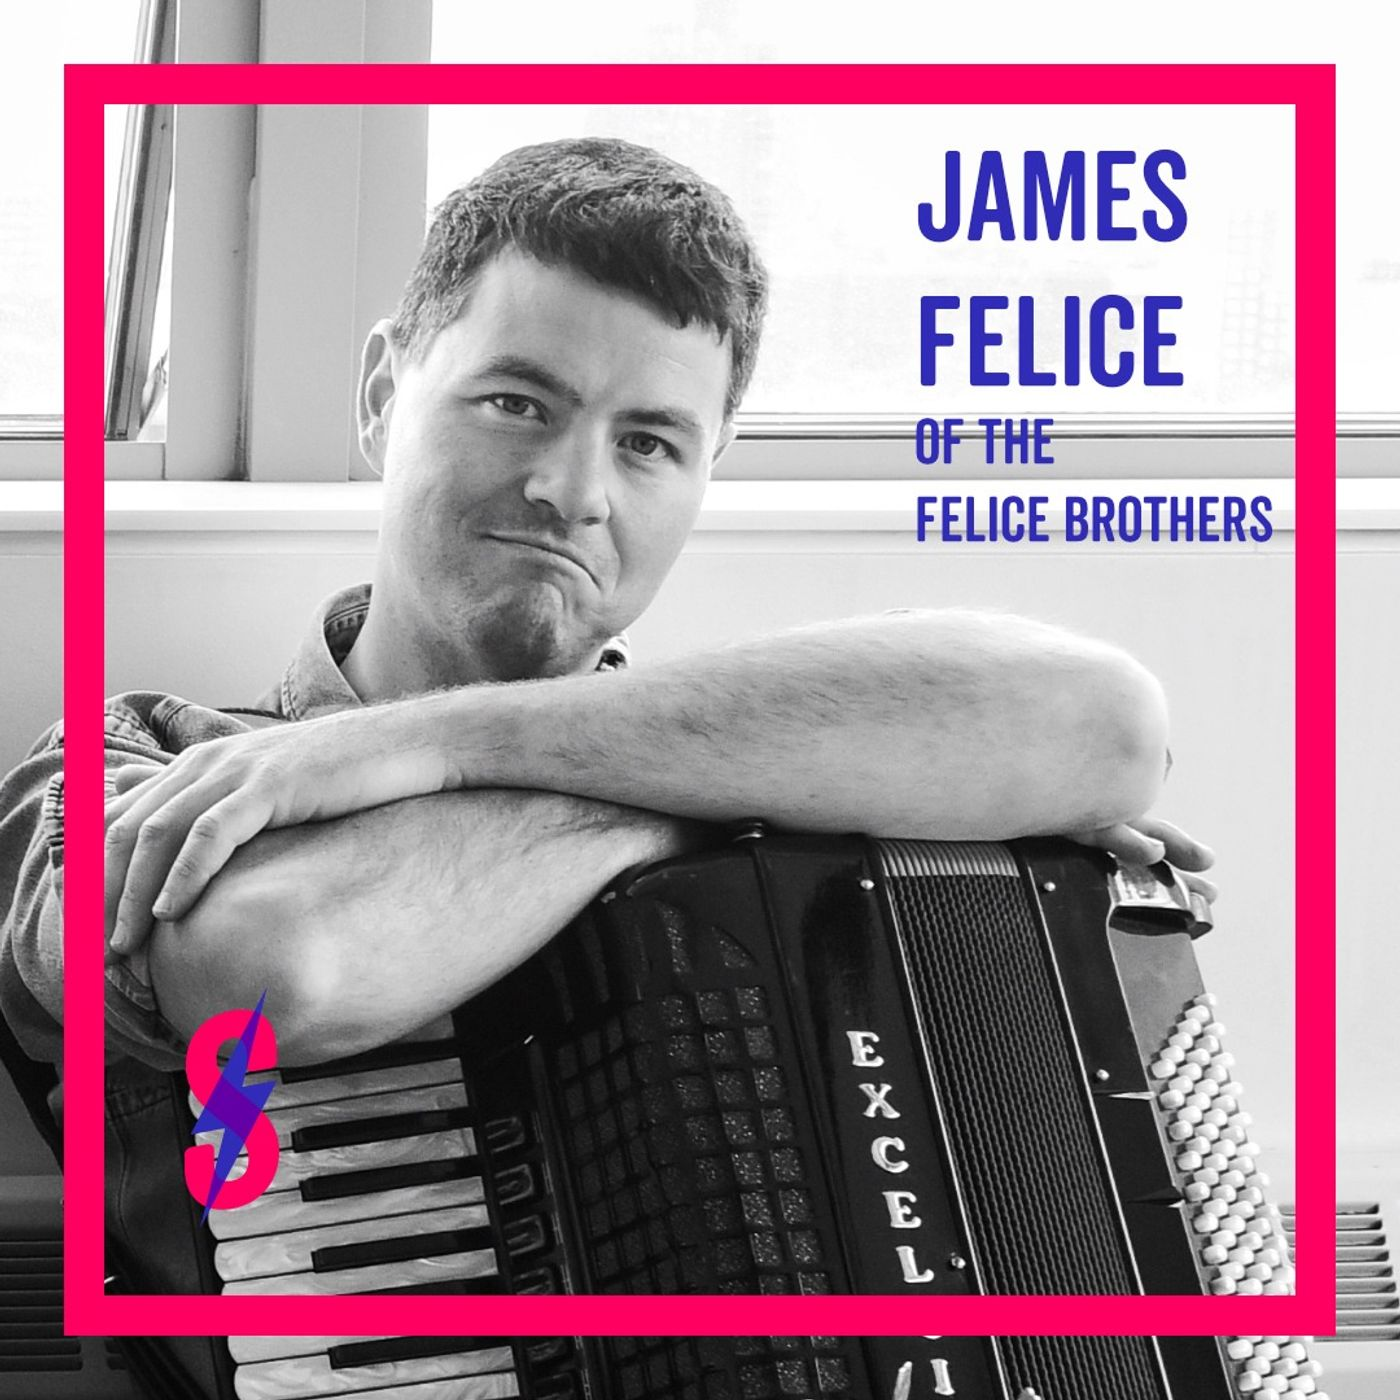 The Felice Brothers' James Felice's Spark Is Randy Newman's Sail Away: A Warm Blanket Made Of Songs